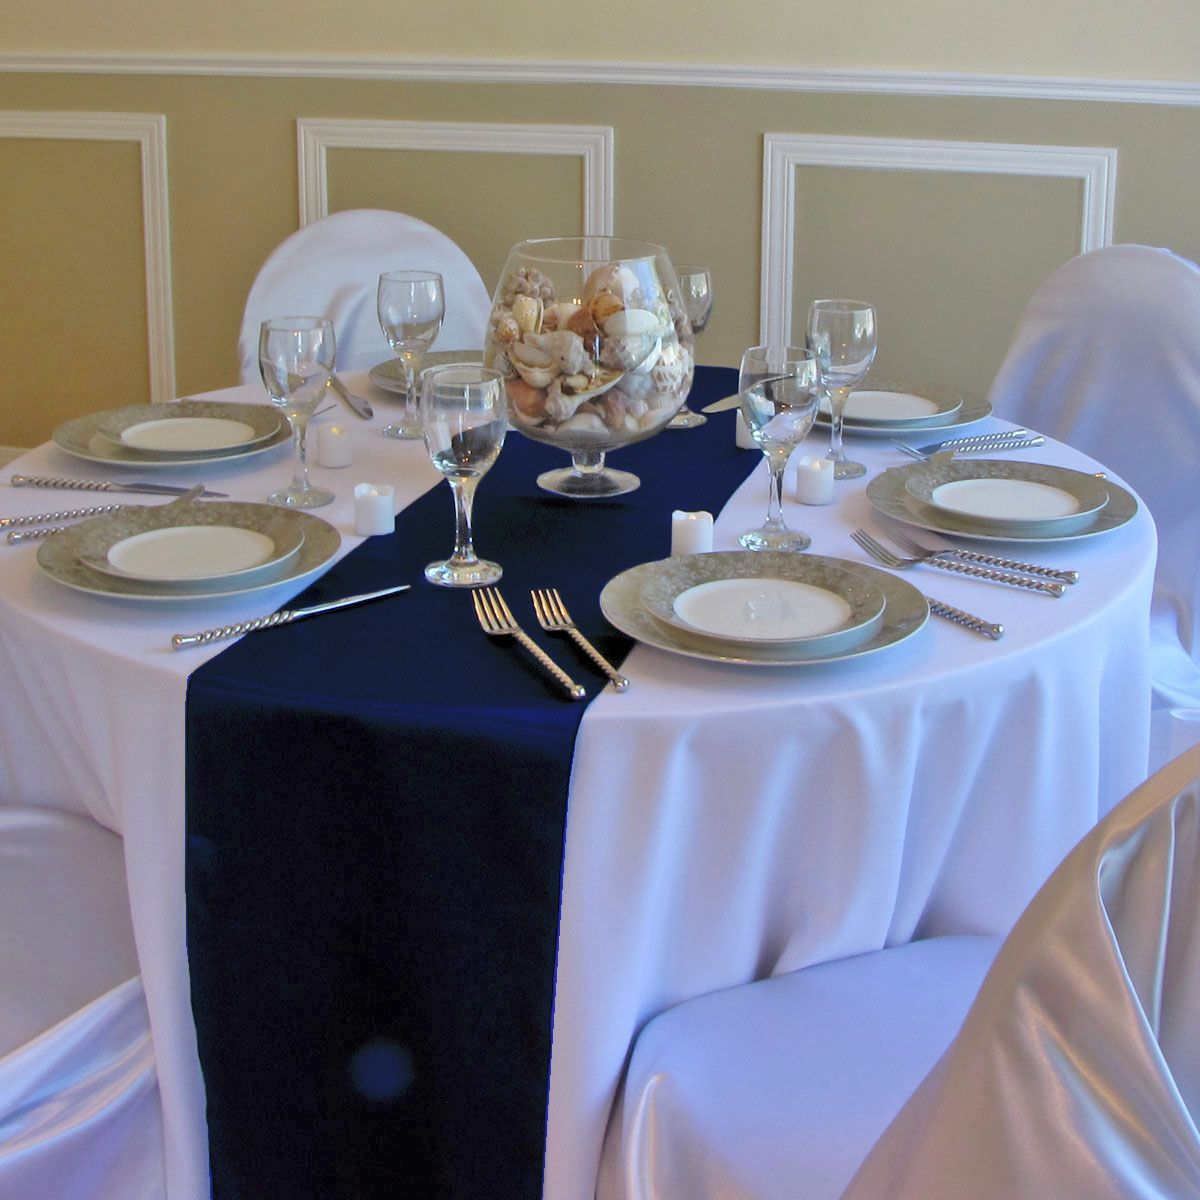 Wedding Table Blue Table Decorations For Wedding blue table runners wedding google search pinterest explore decorations and more